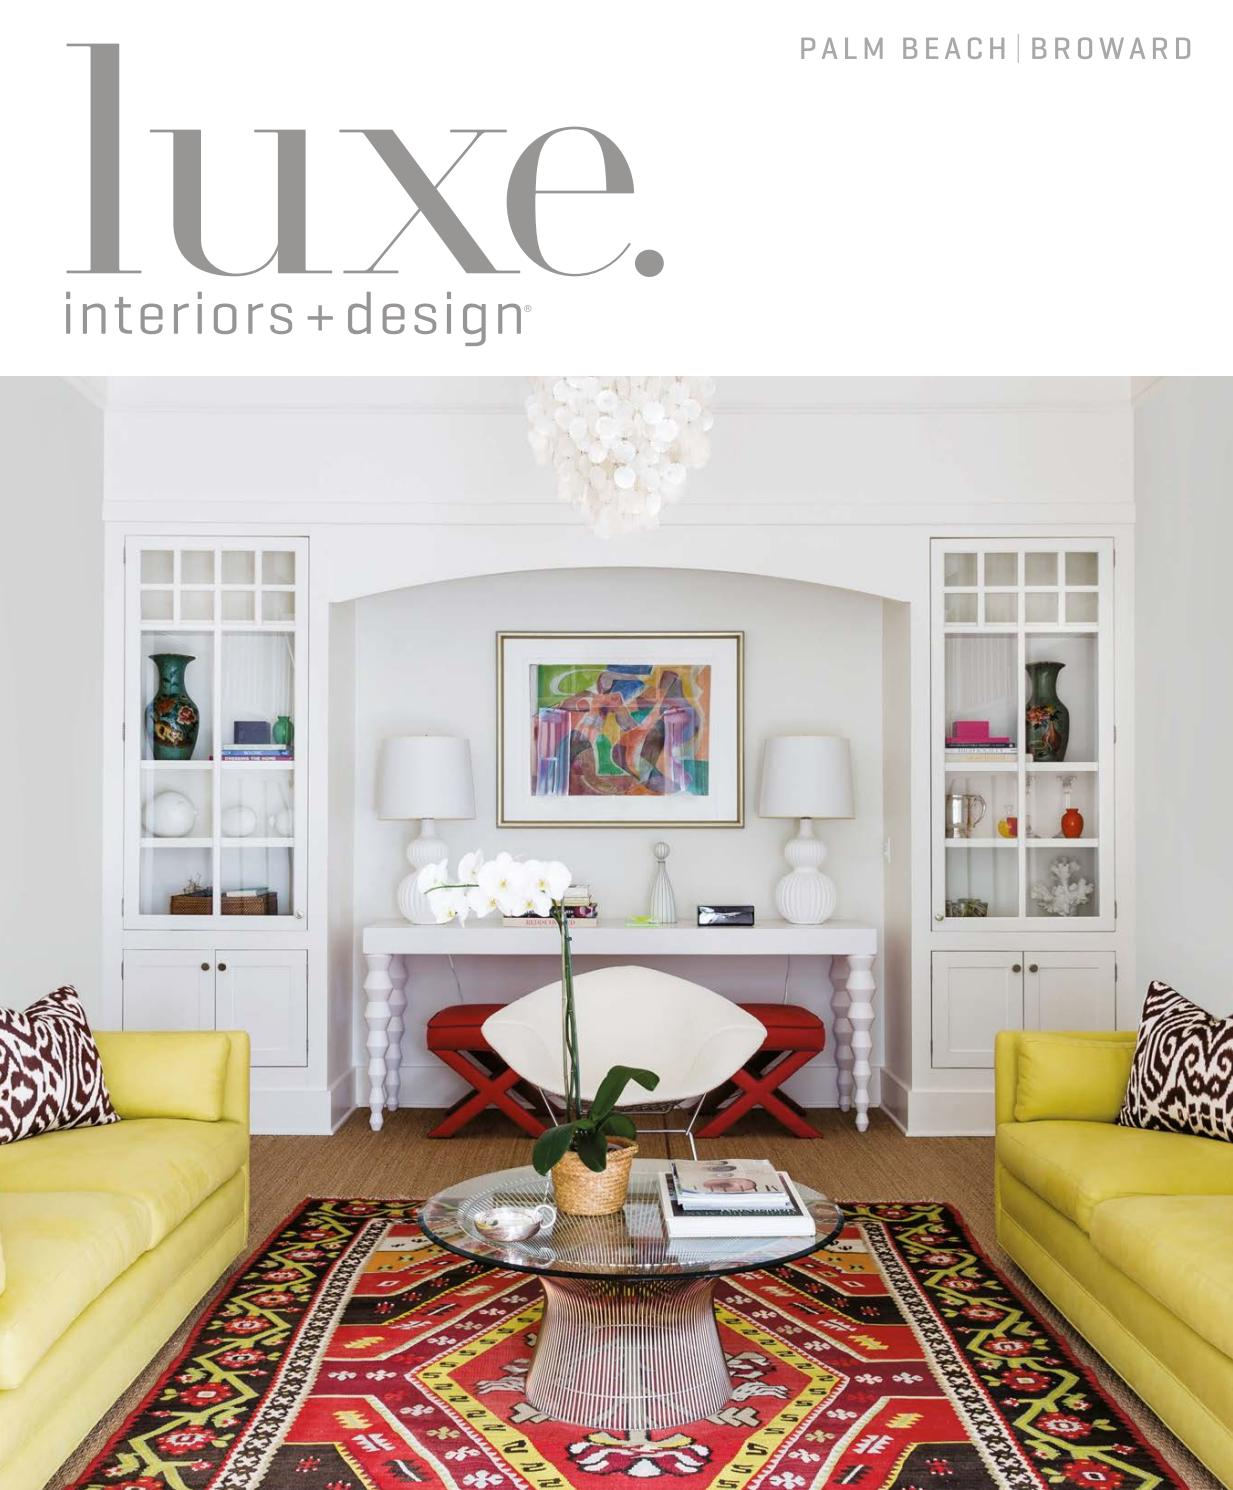 Interio Sofa Marilyn Luxe Magazine May 2017 Palm Beach By Sandow Issuu